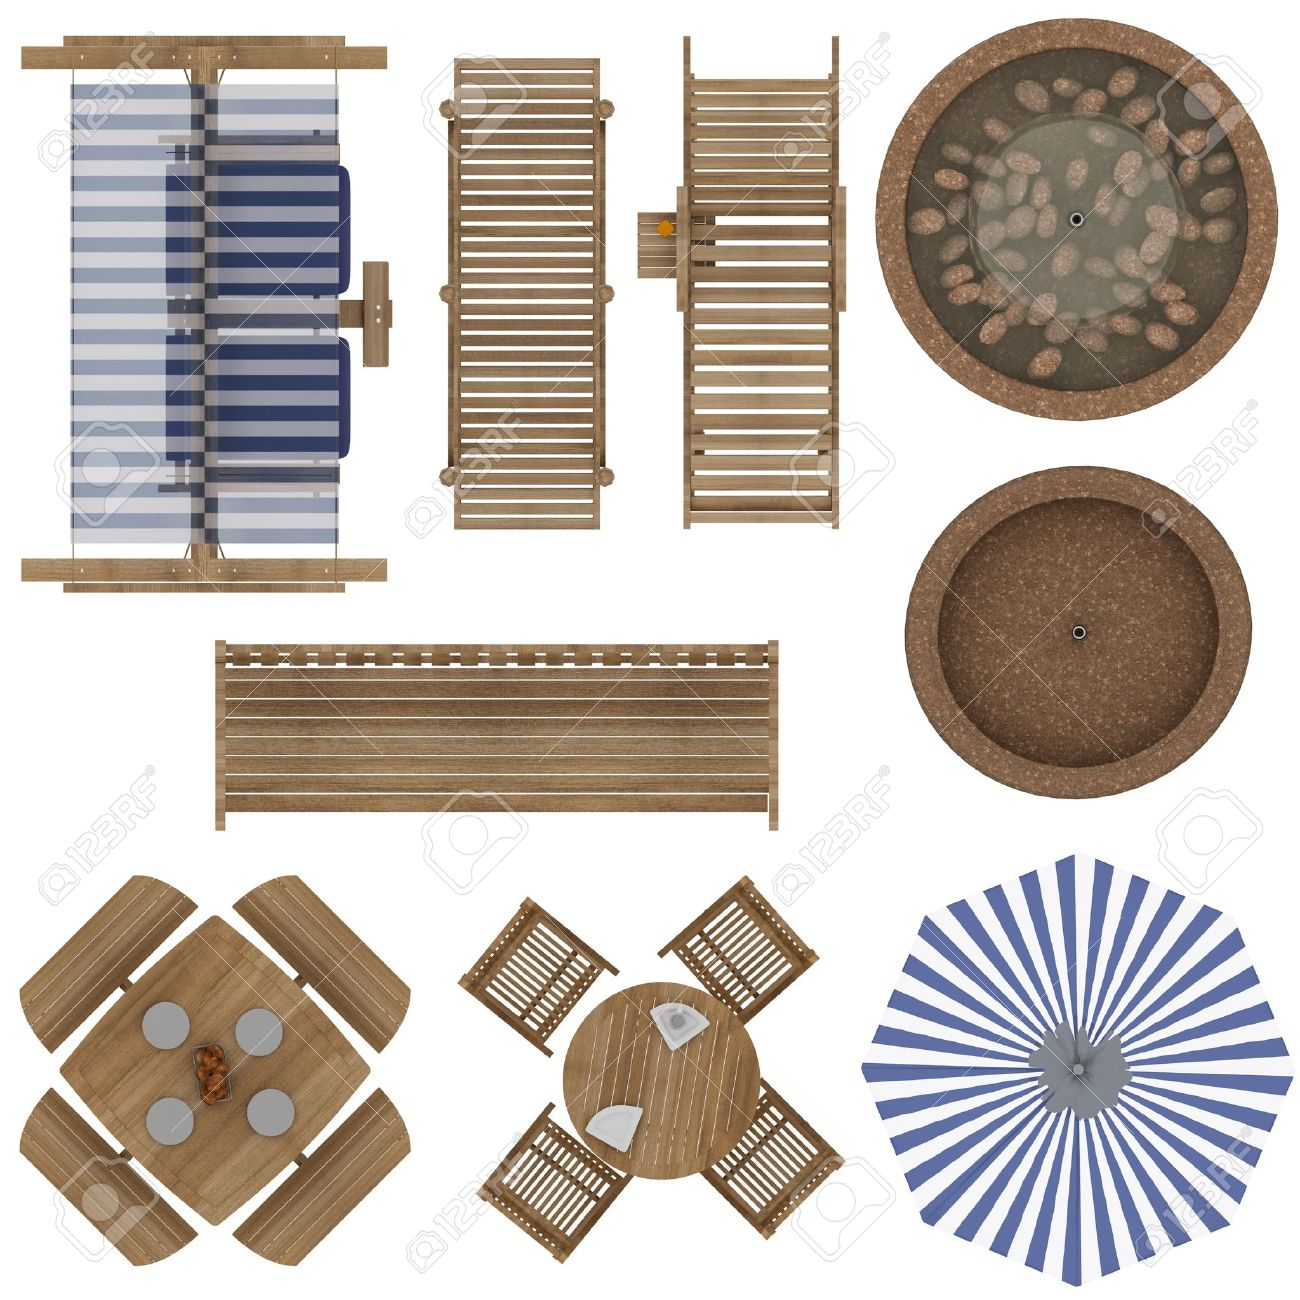 Furniture top view images - Set Of Outdoor Furniture Top View Isolated On White Background Stock Photo 18841931